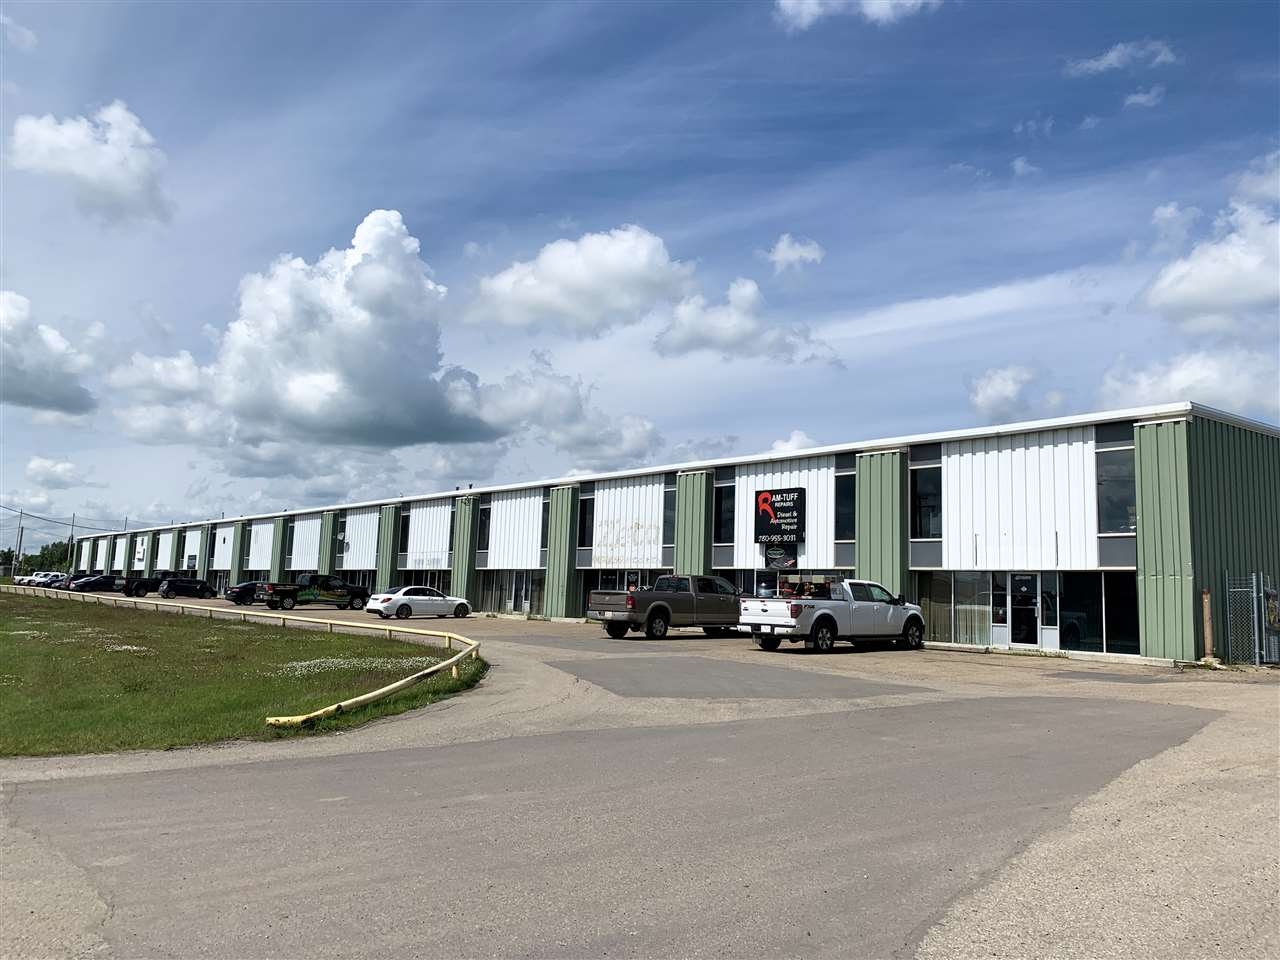 3,360 sq.ft. 6720sqft, and 10,080 sq.ft. with yard available for lease ? Double row parking on site ? Large marshaling area behind building with pockets of yard (approx 35?x110?) ? IND Industrial zoning ? Easy access to Airport Road, Highway 2, and Highway 625 18? Clear ceilings, 12 X 14 Grade level overhead door, sumps in each bay - Bays have bonus storage mezzanine available Net lease rate of $8.50/sqft with $2.50/sqft operating costs